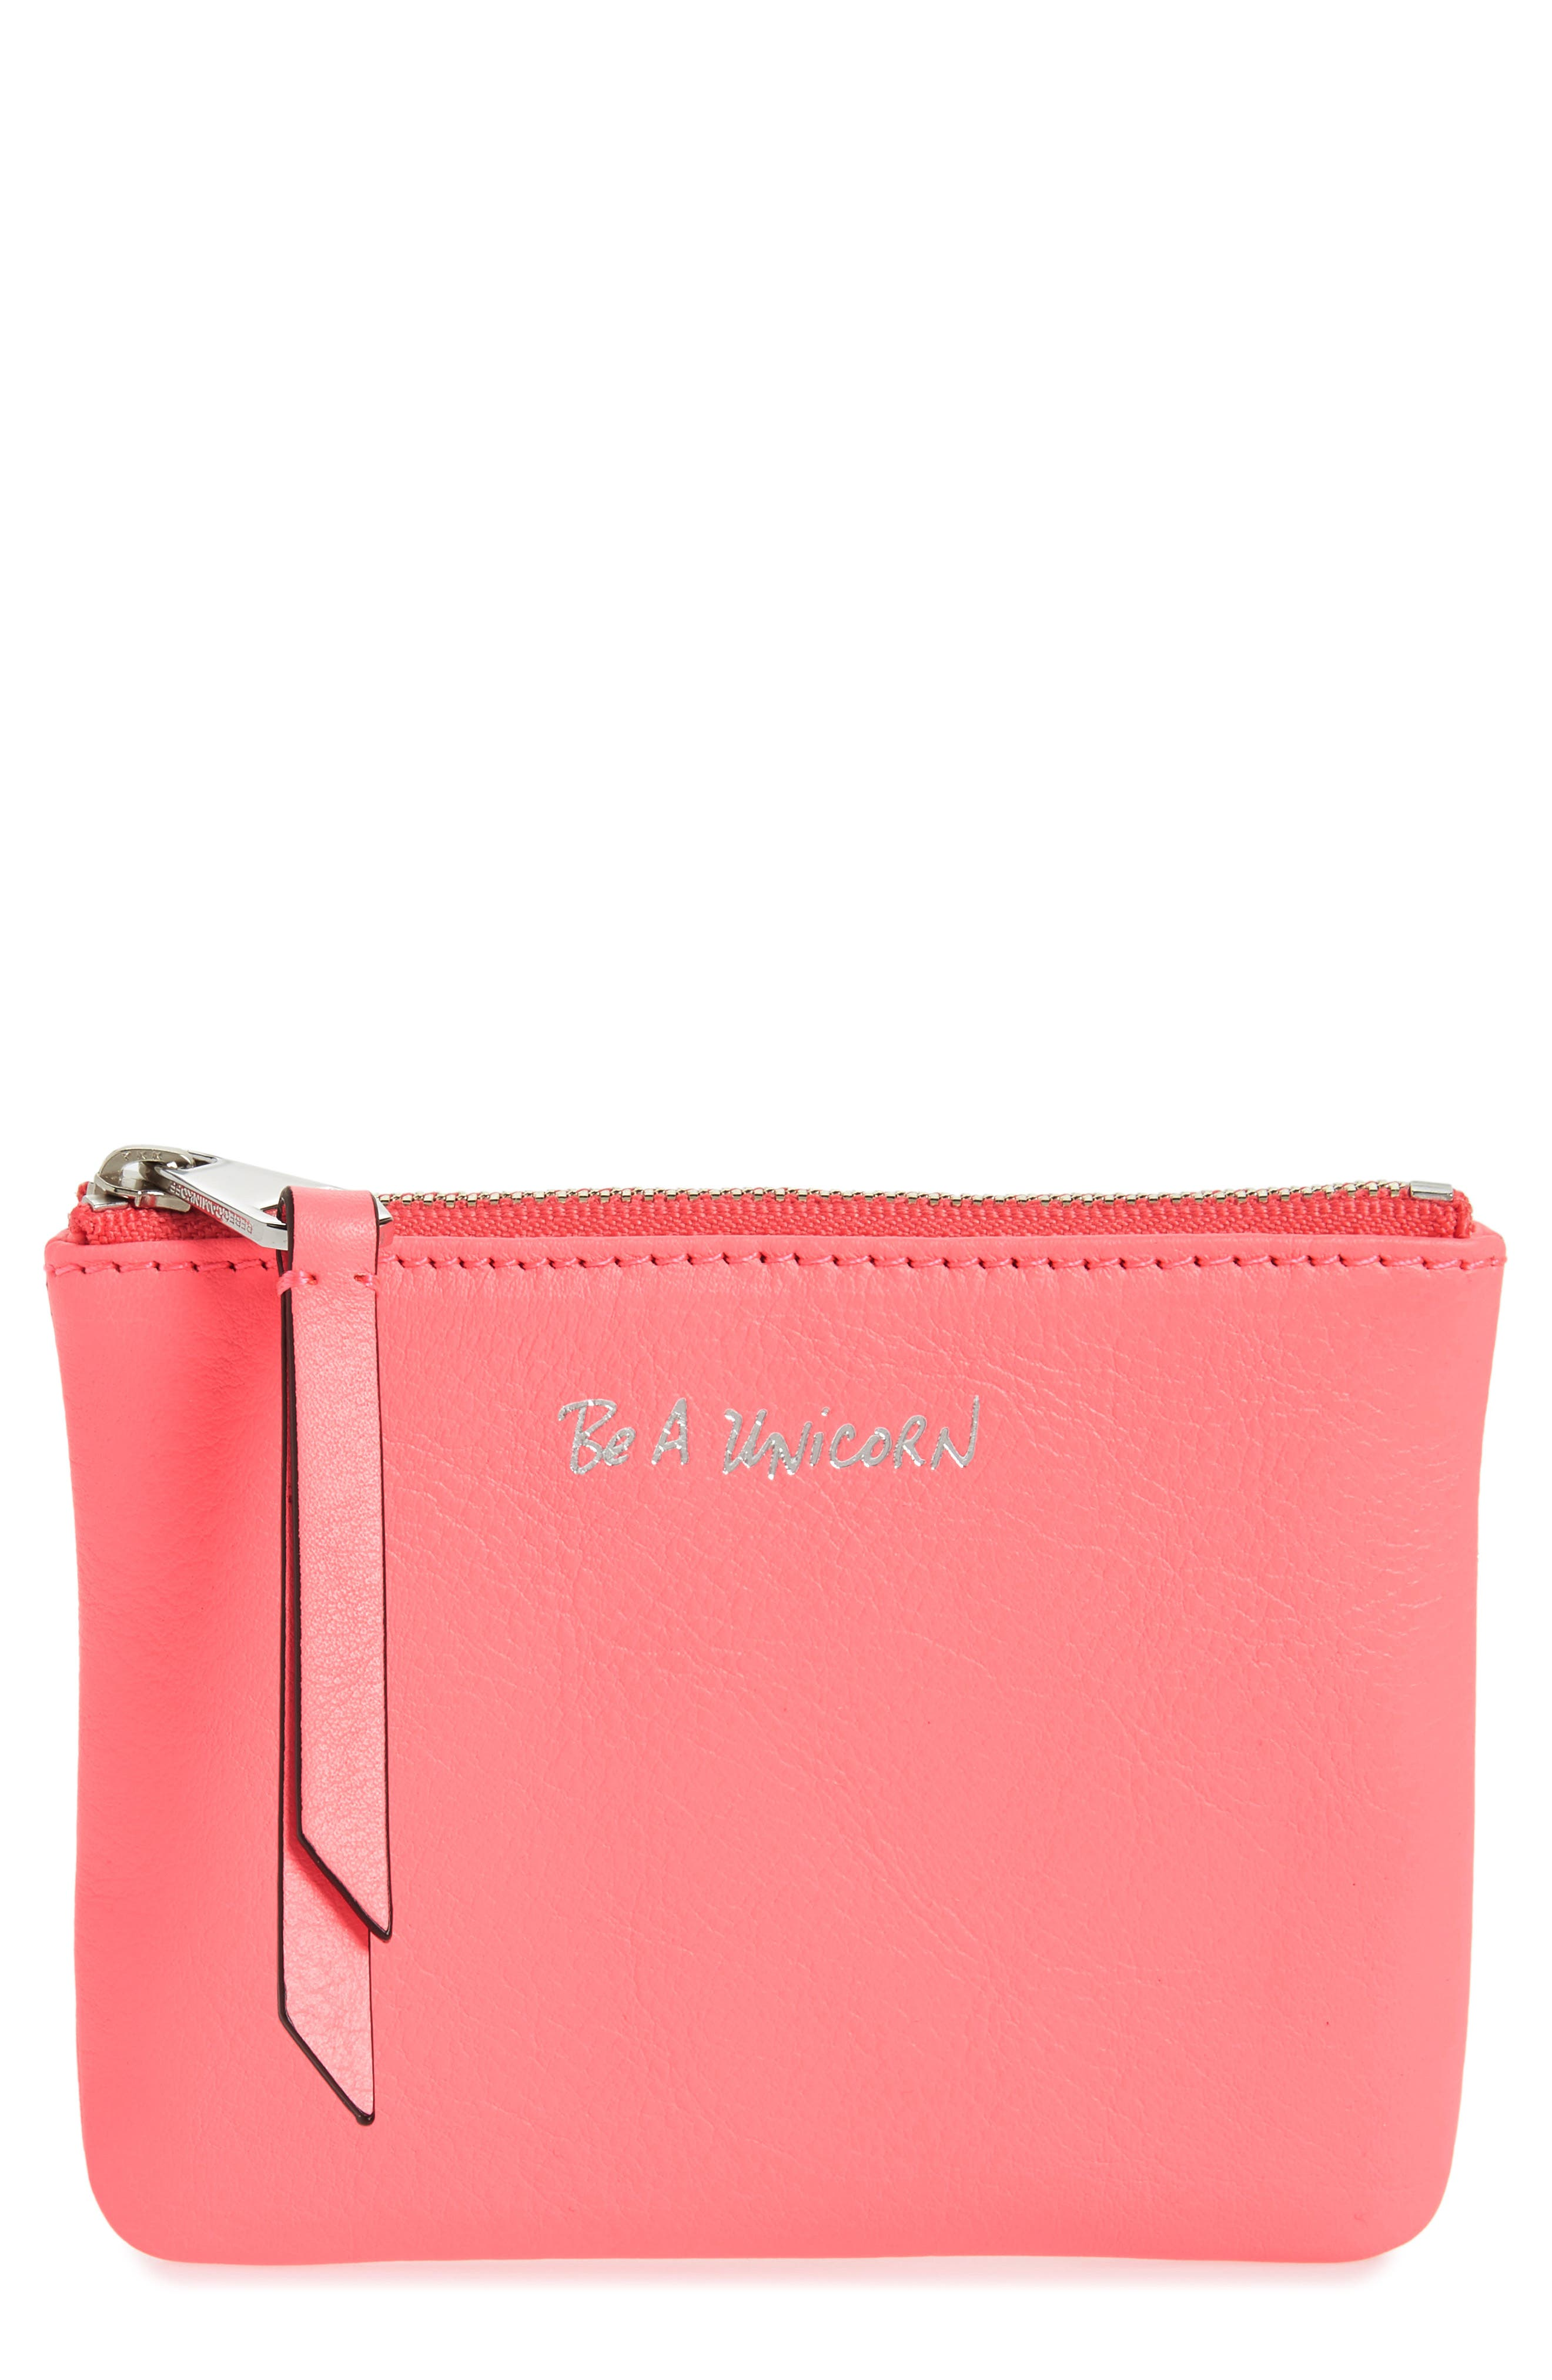 Betty - Be a Unicorn Leather Pouch,                         Main,                         color, Neon Pink